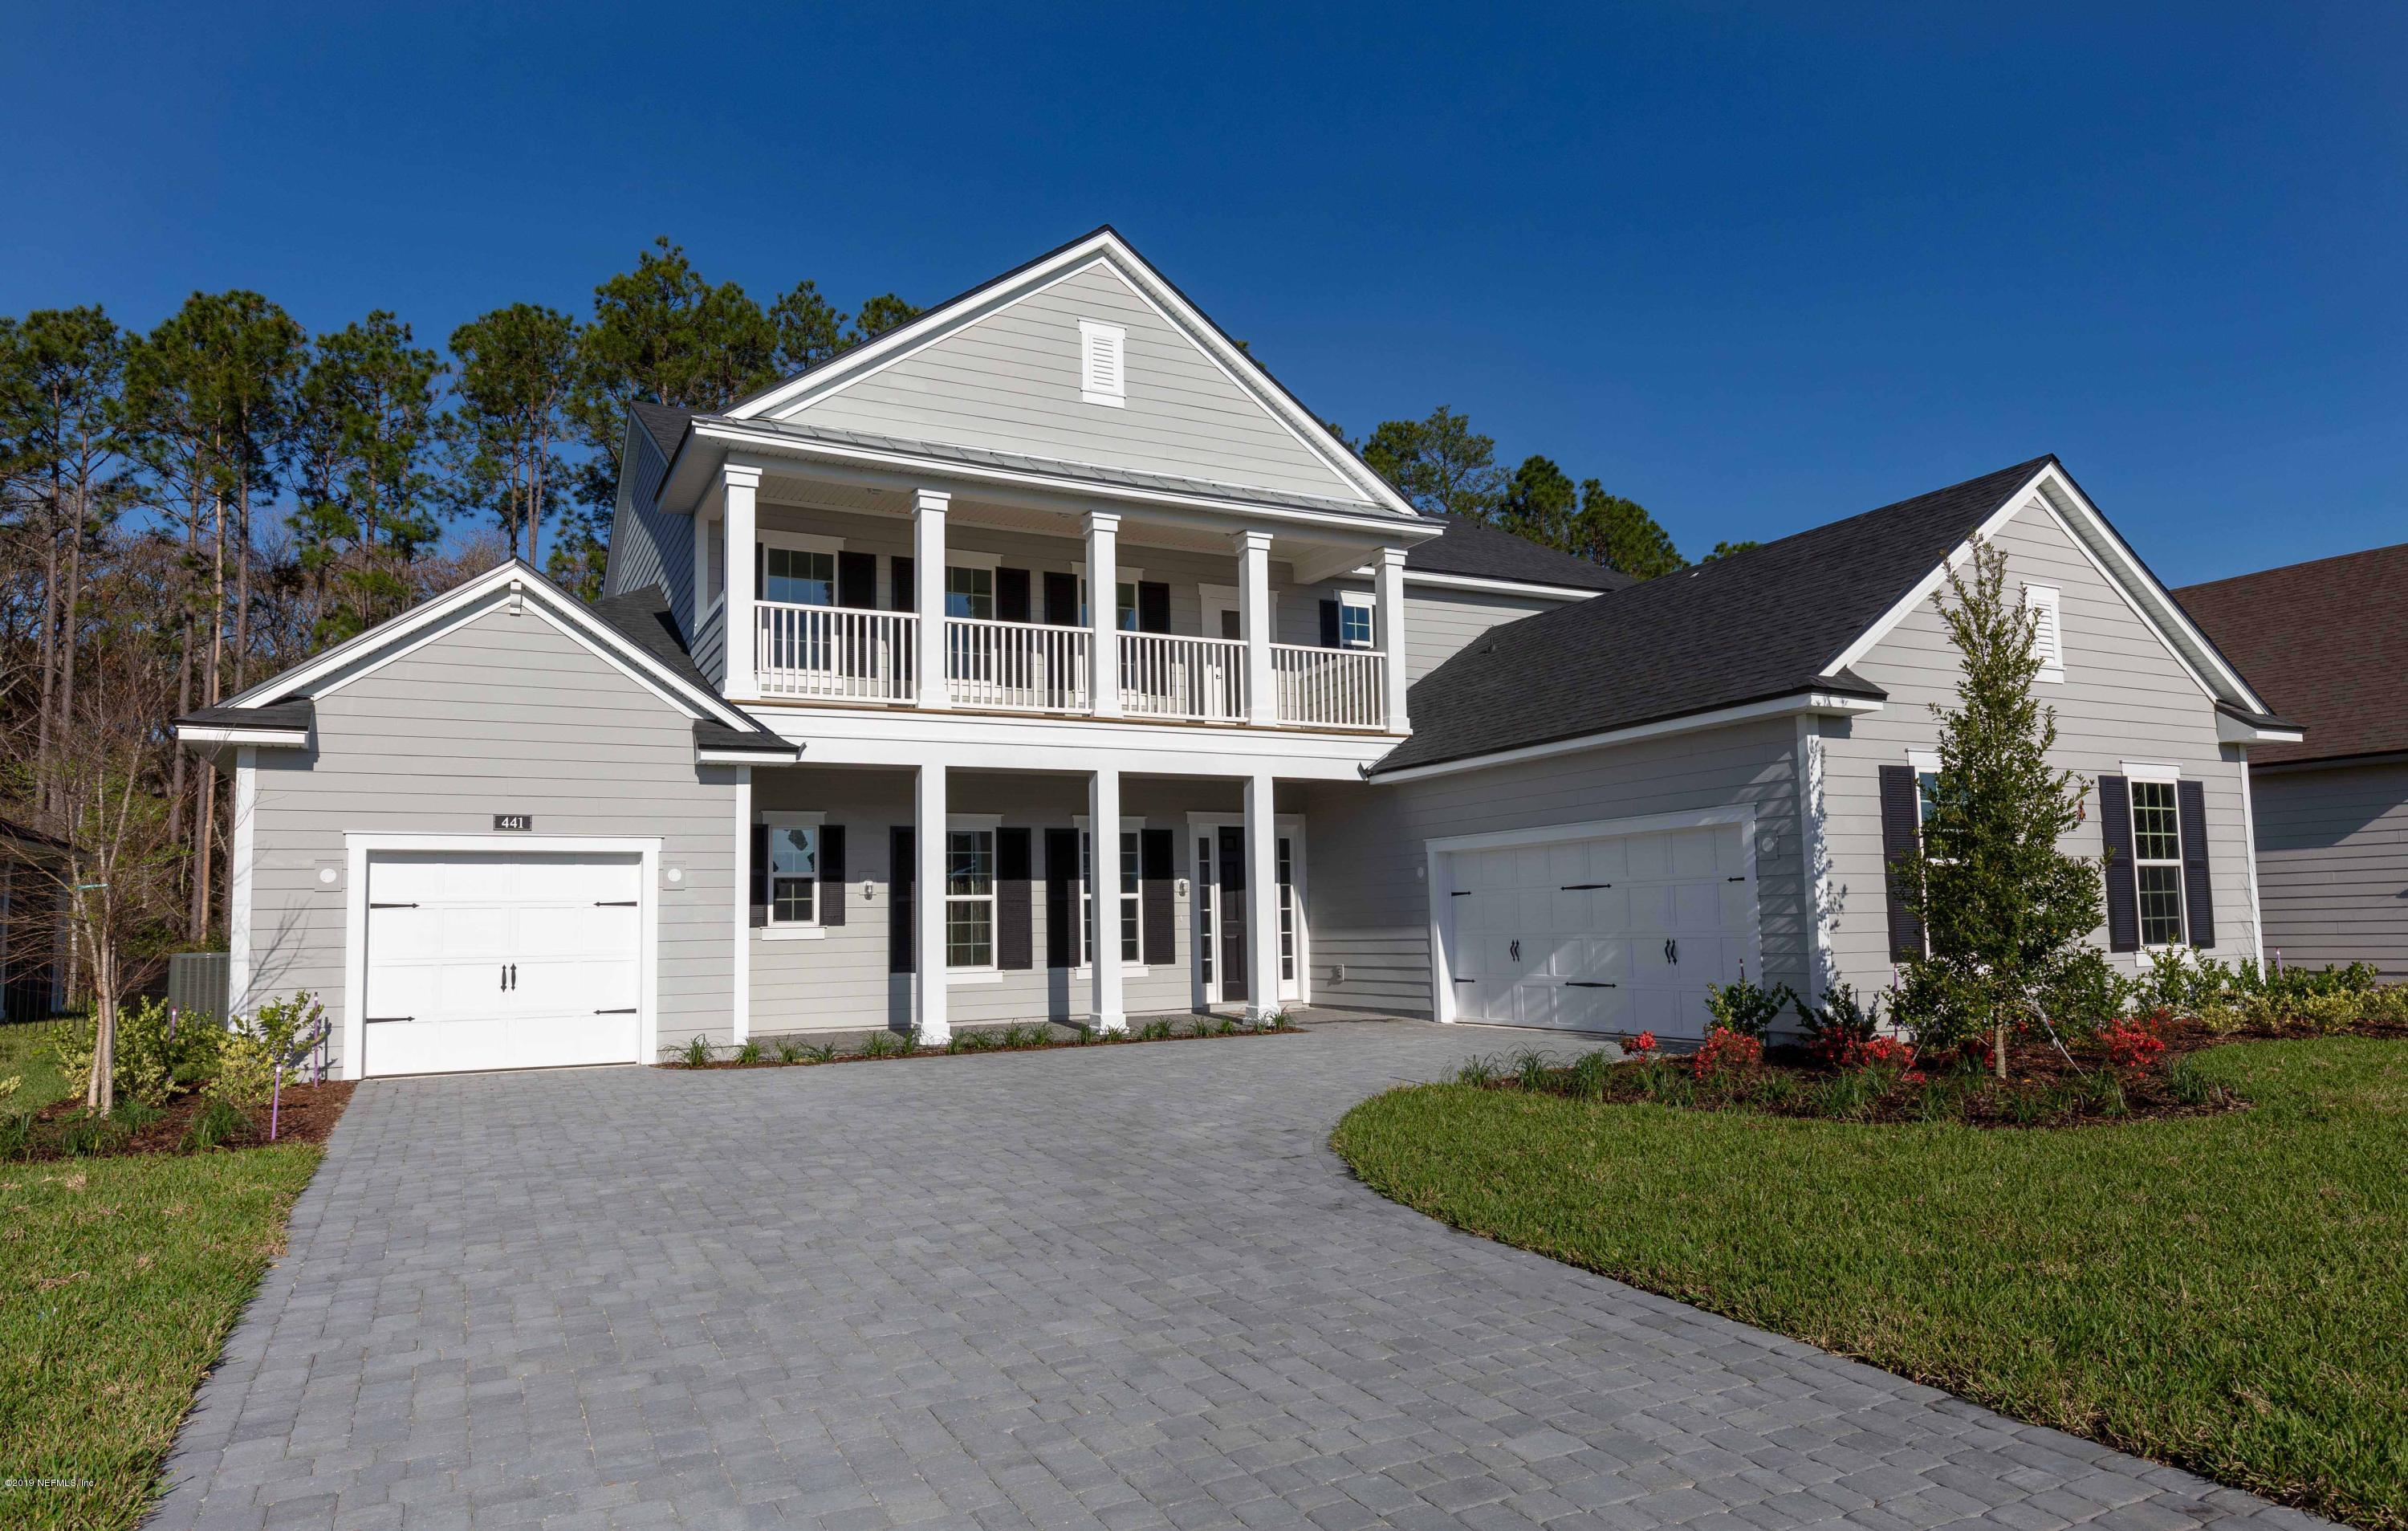 441 OUTLOOK, PONTE VEDRA, FLORIDA 32081, 5 Bedrooms Bedrooms, ,4 BathroomsBathrooms,Residential - single family,For sale,OUTLOOK,940266